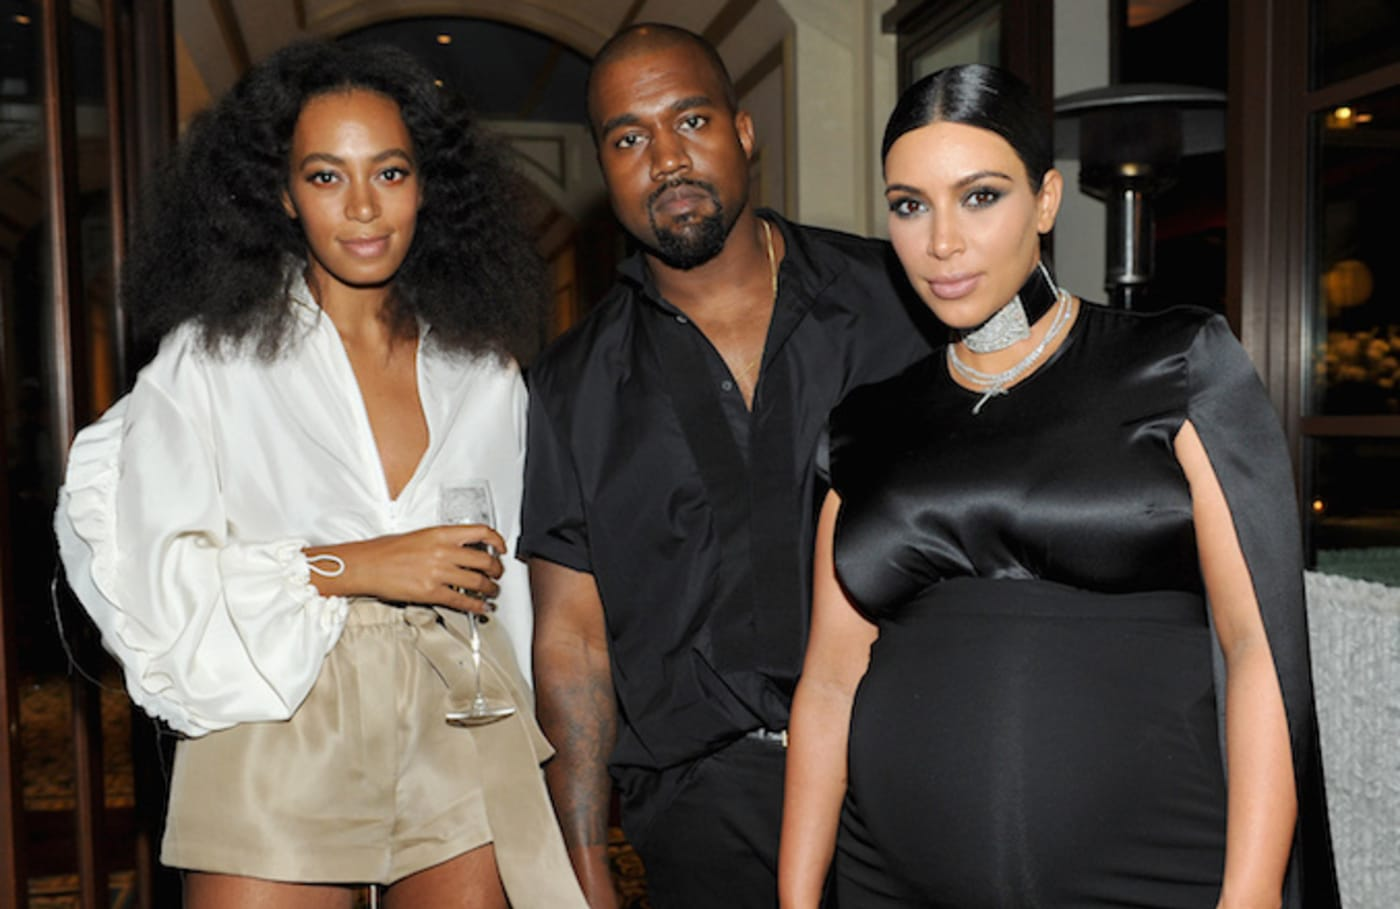 Solange Knowles and Kanye West